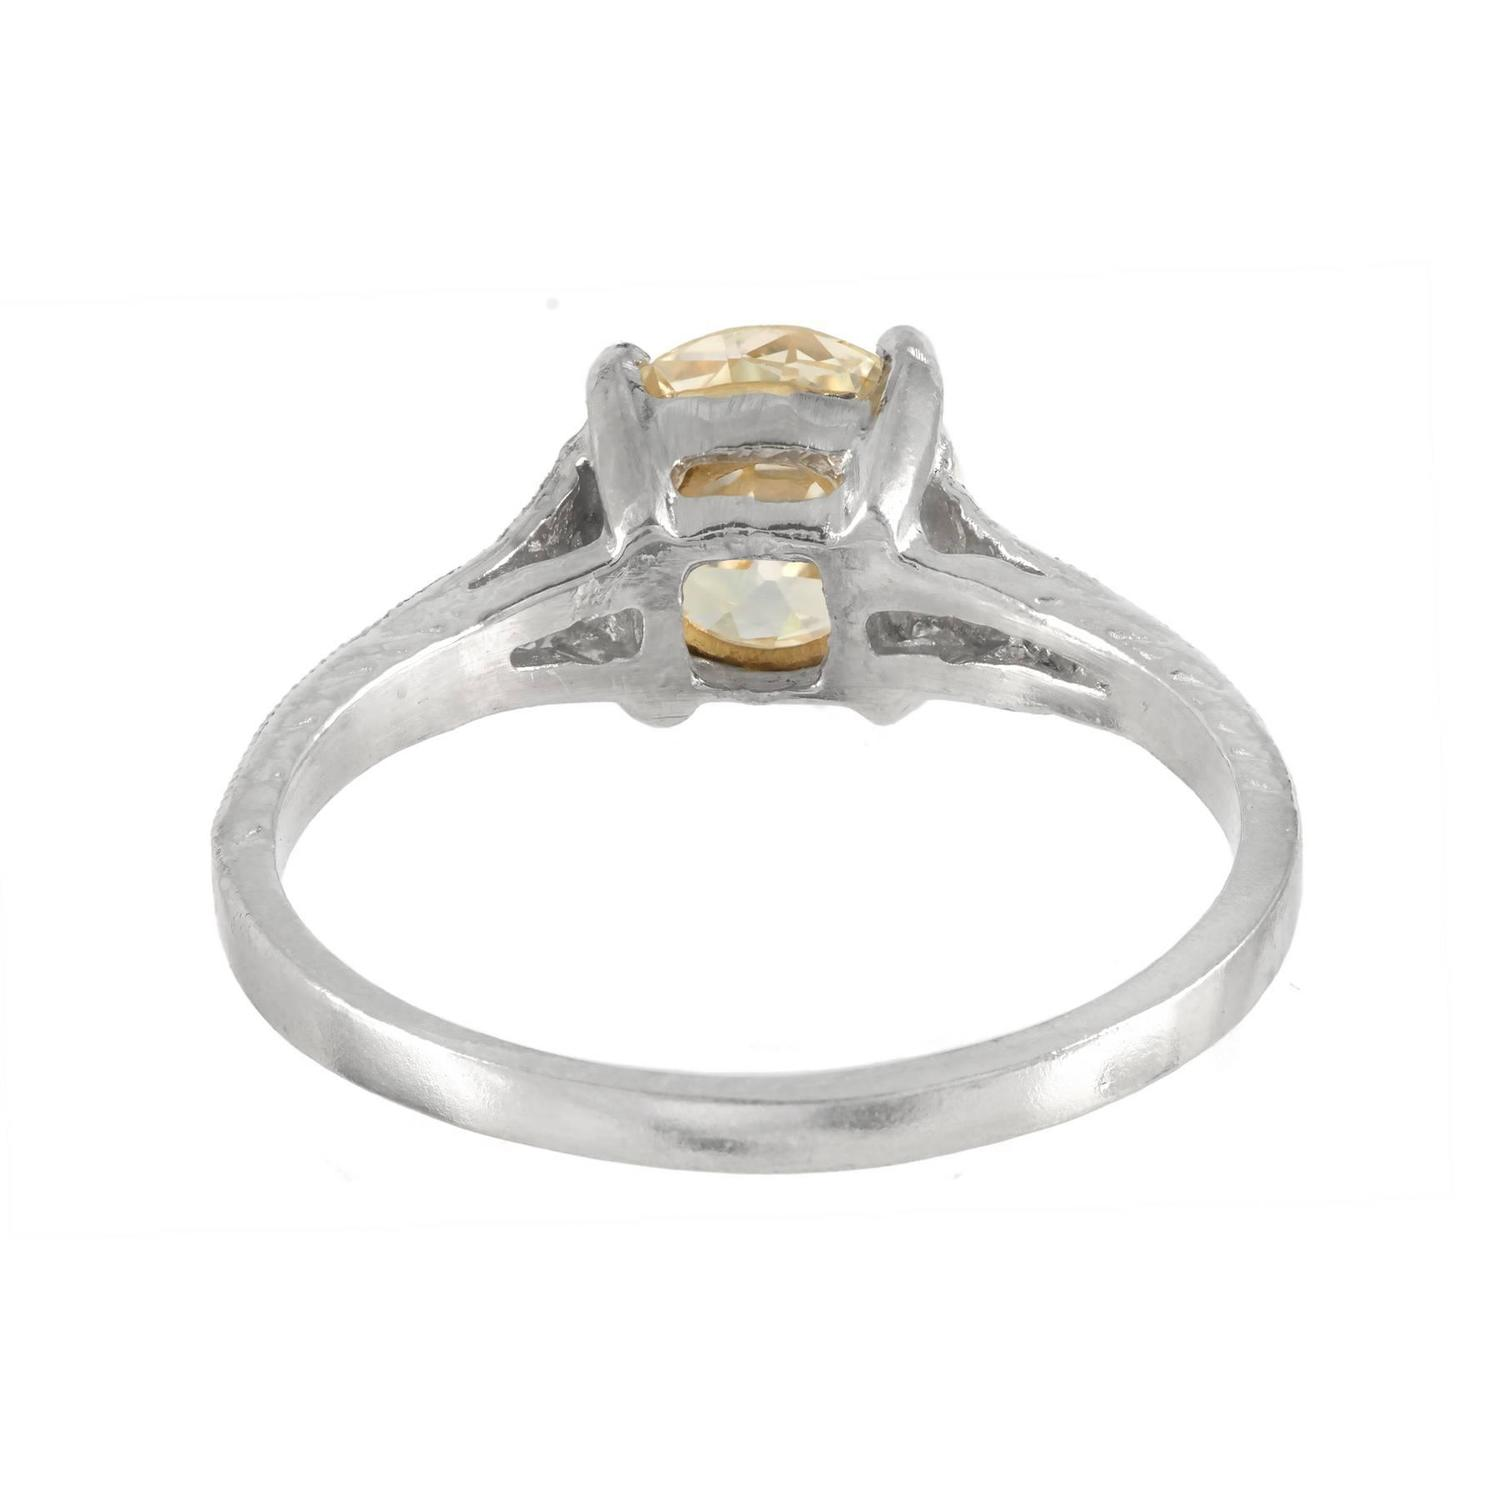 Natural Light Yellow Diamond Platinum Engagement Ring For Sale at 1stdibs